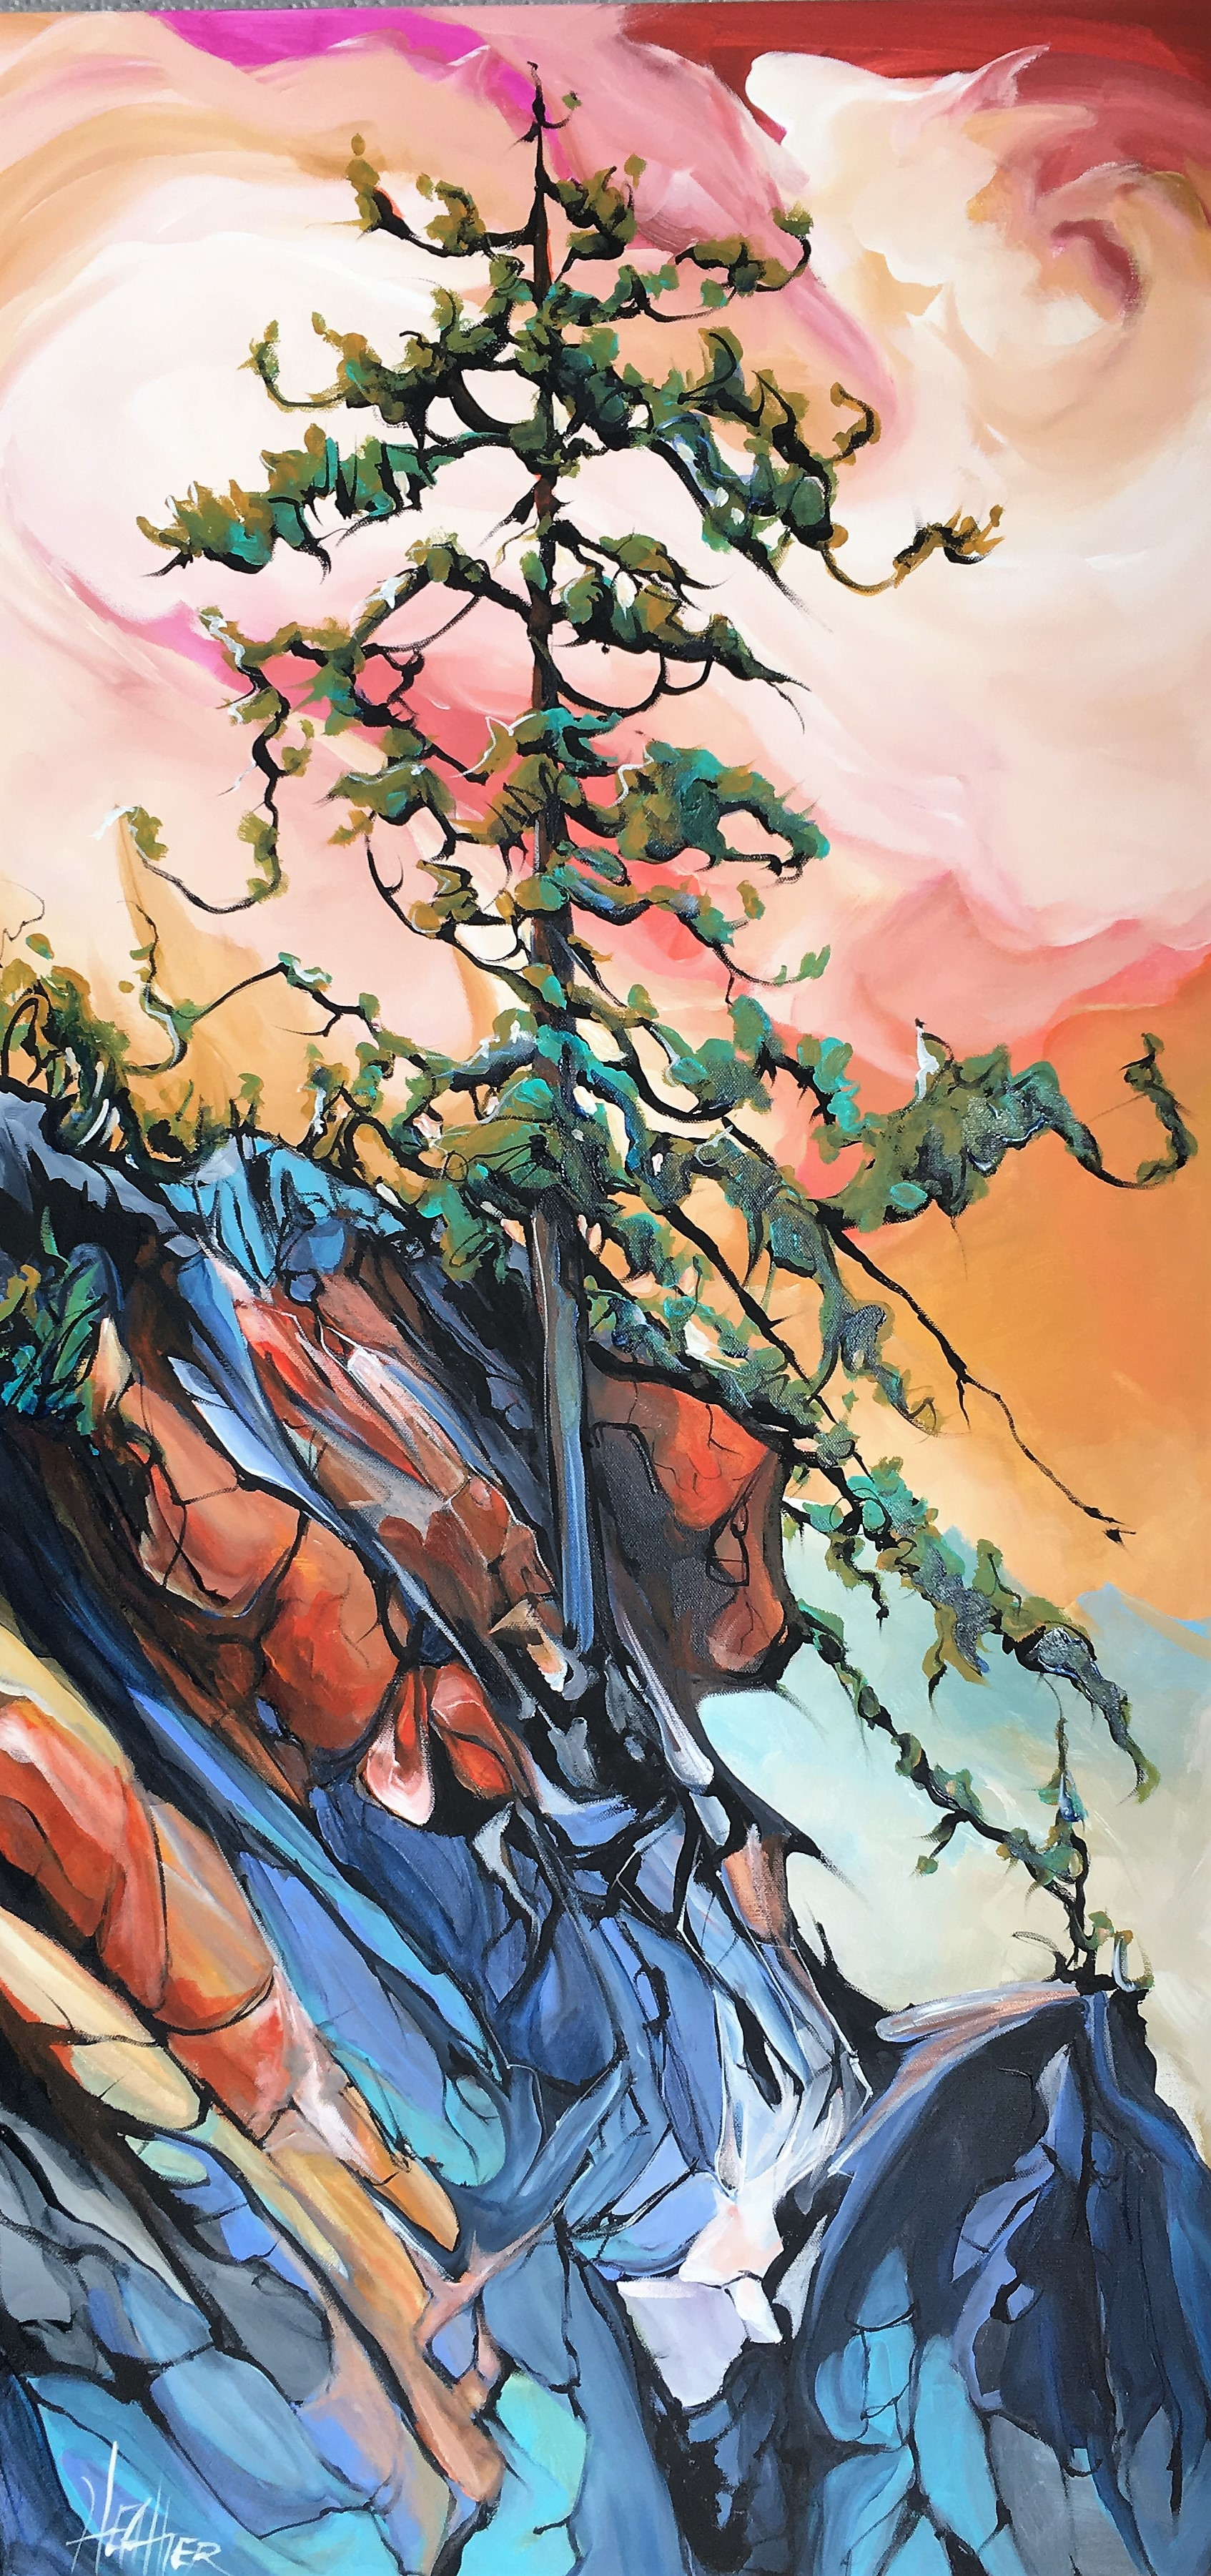 Tequila Sunrise 24 x 48 SOLD